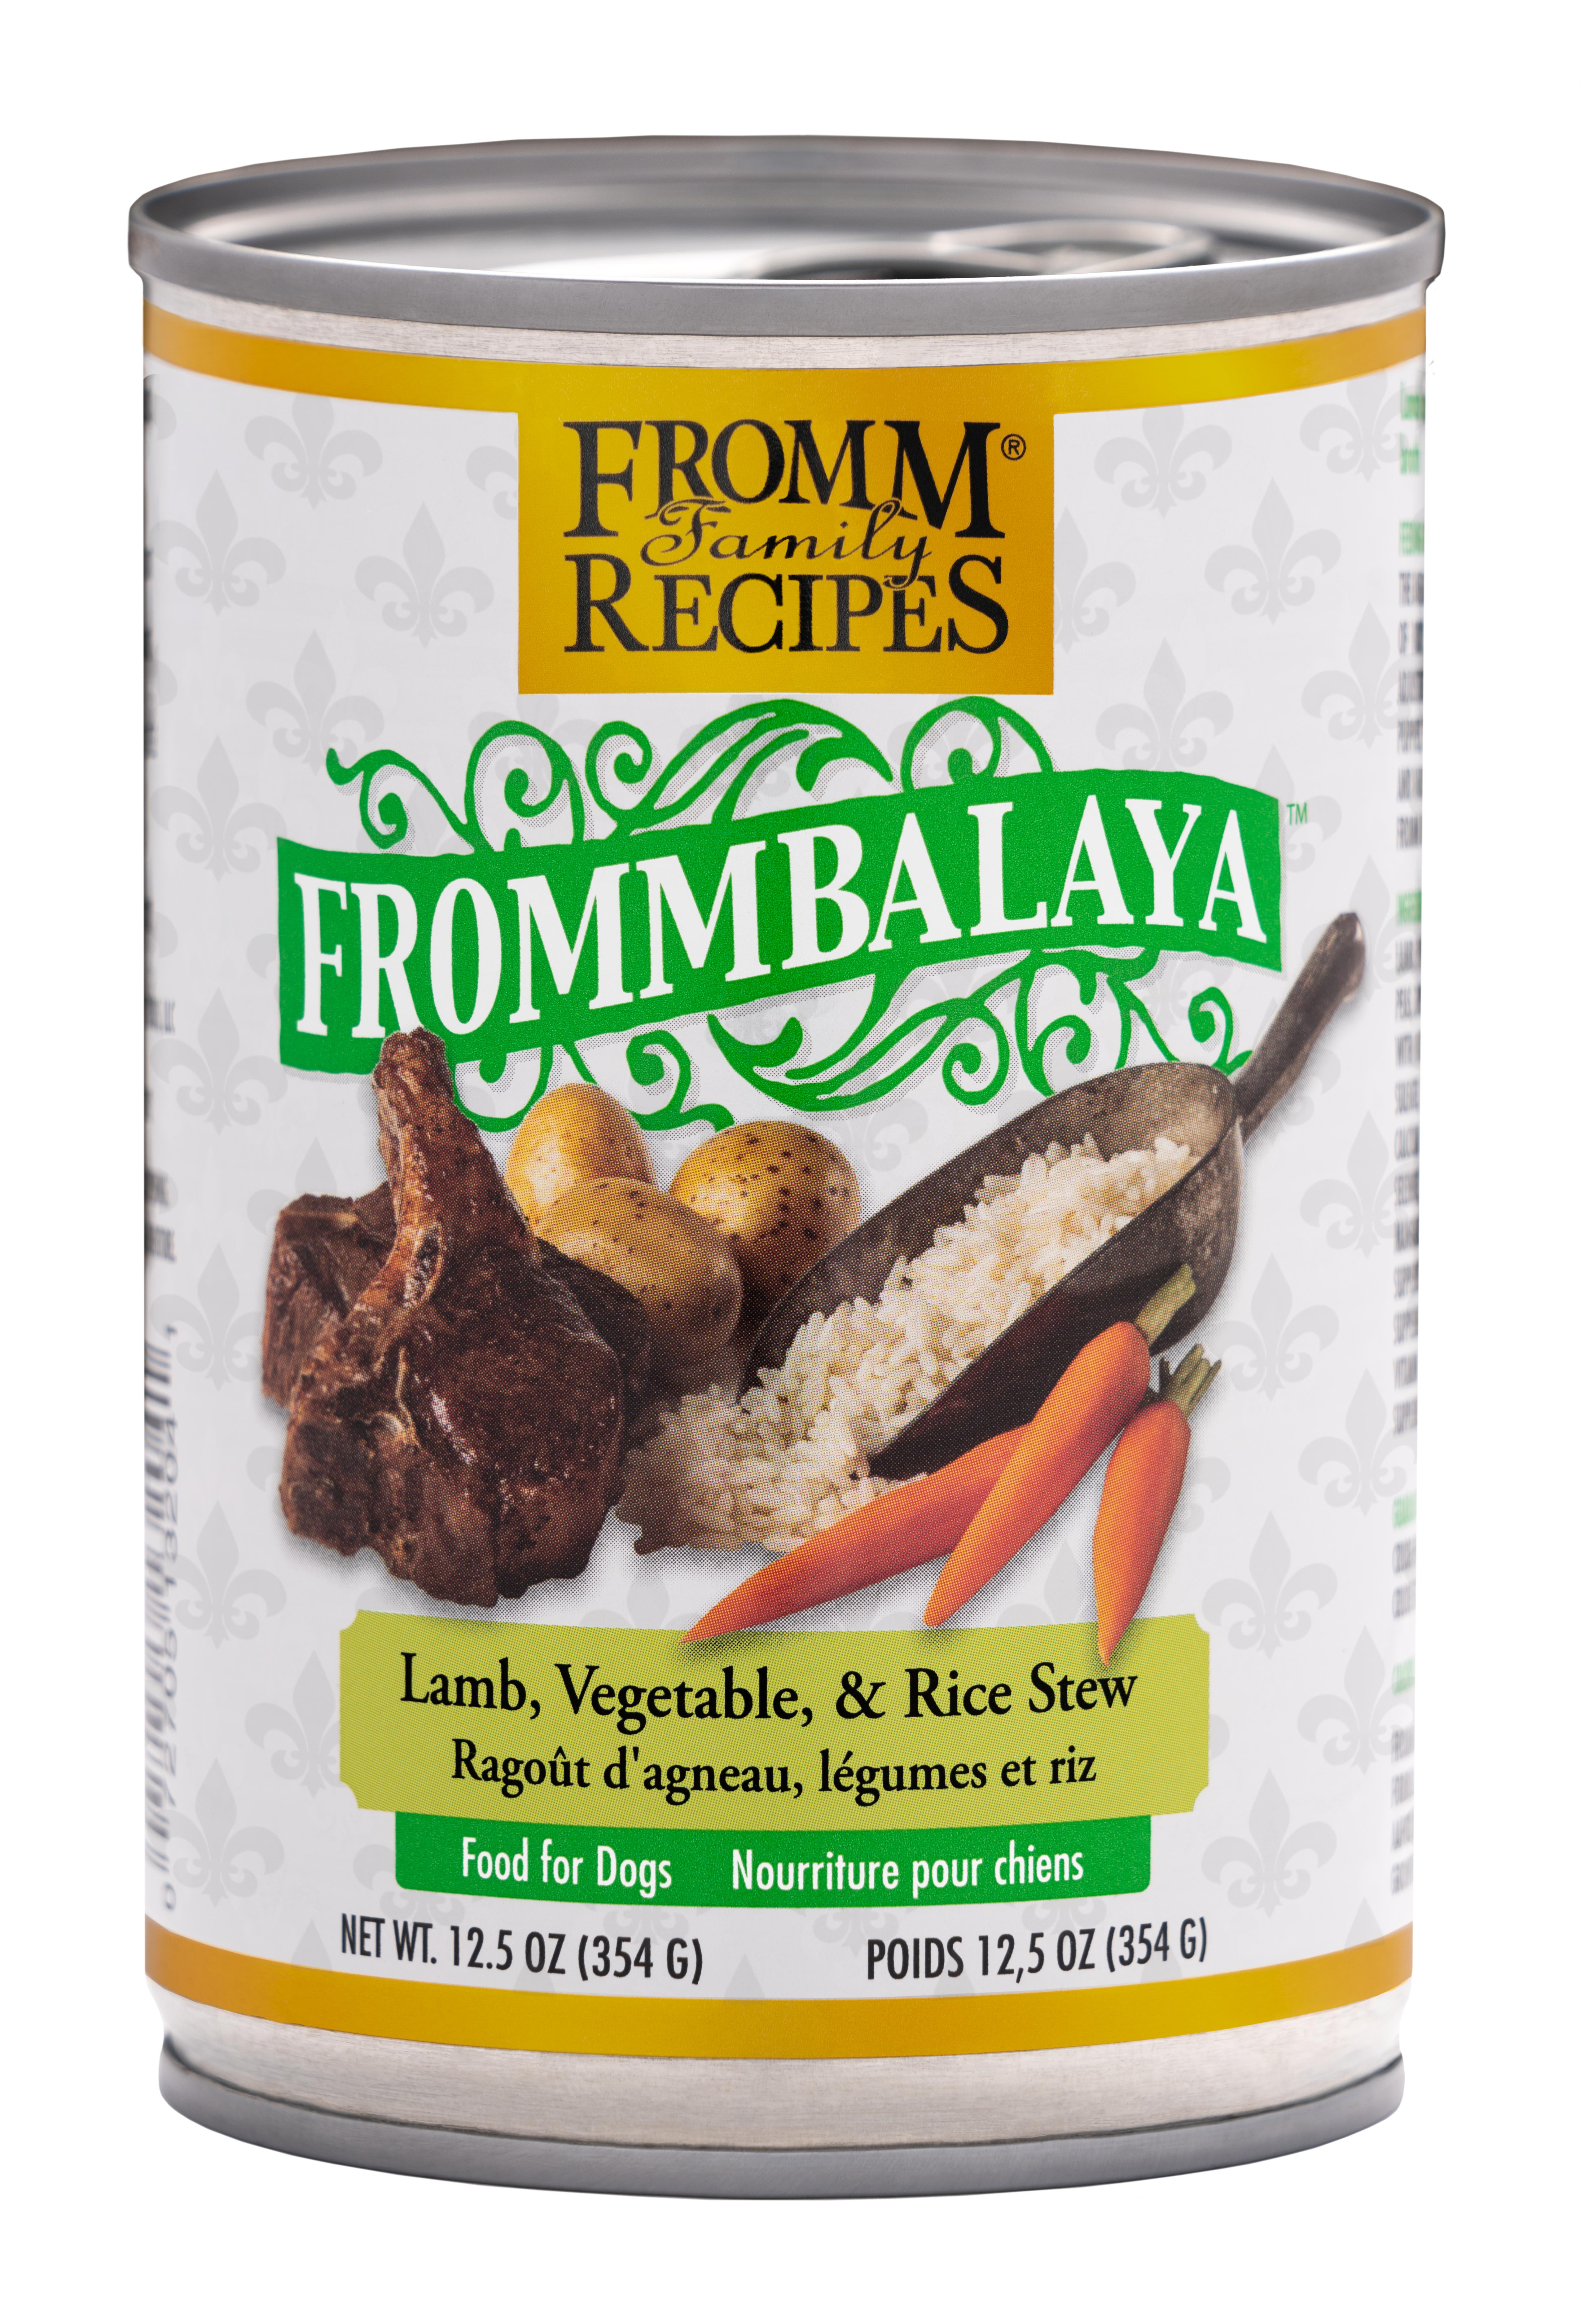 Fromm Family Recipes Frommbalaya Lamb, Vegetable & Rice Stew Canned Dog Food, 12.5-oz